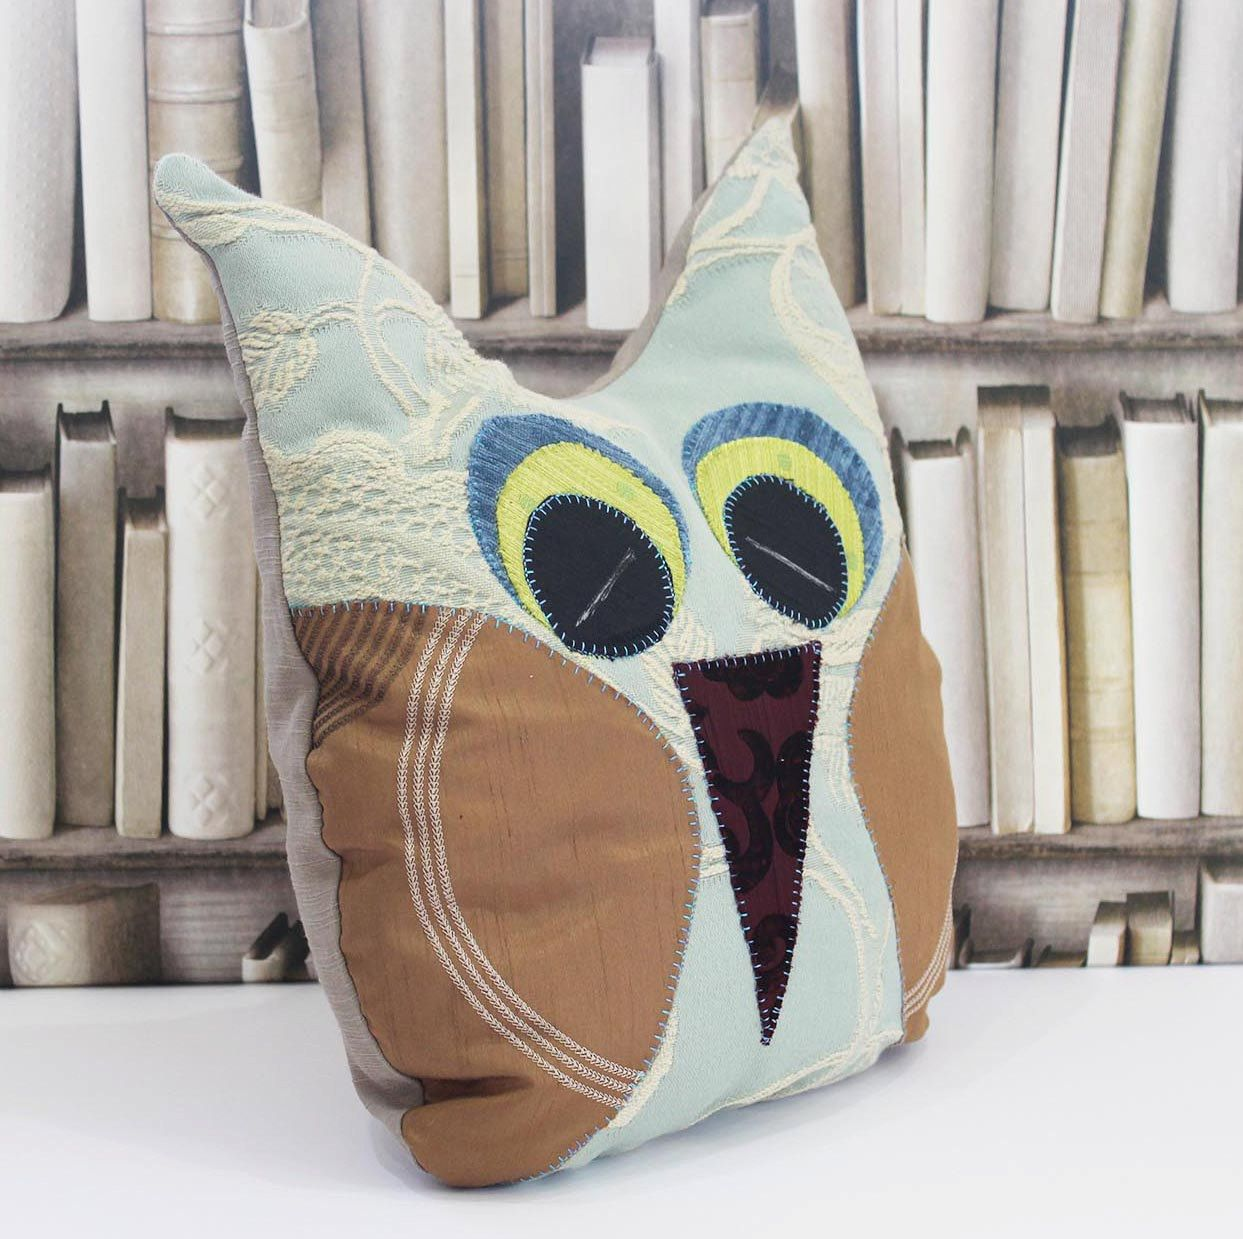 Owl cushion pillow, owl ornament, fabric owl cushion pillow, handmade owl cushions, keepsake owl, pale blue beige and black owl by RosieFreckles on Etsy